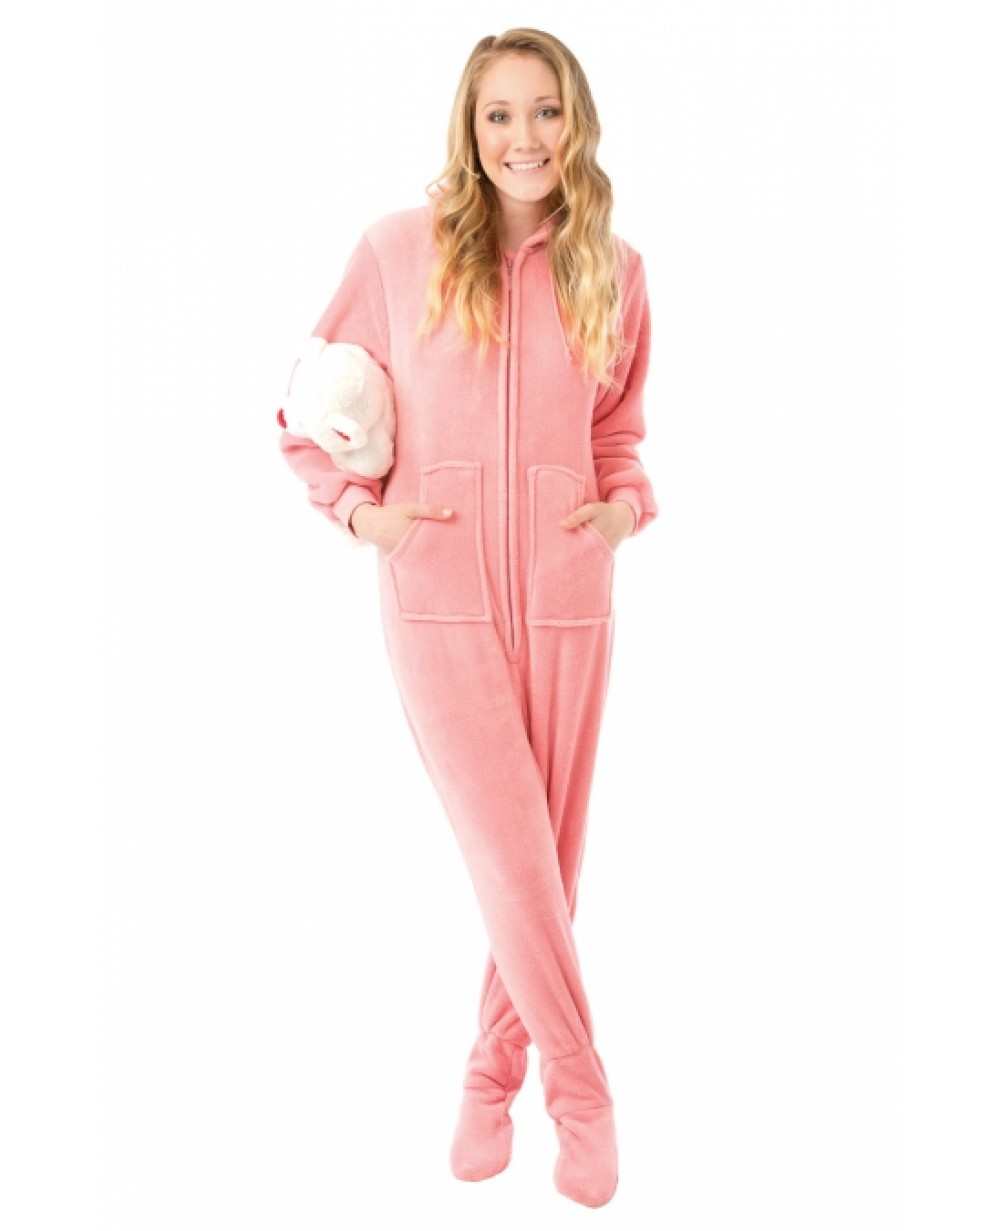 Conveniently shop for Footed Pajamas by size. We carry a wide range of sizes for adults, kids, babies and pets. No matter what size you are, we have the best footie pajamas to fit any body style.